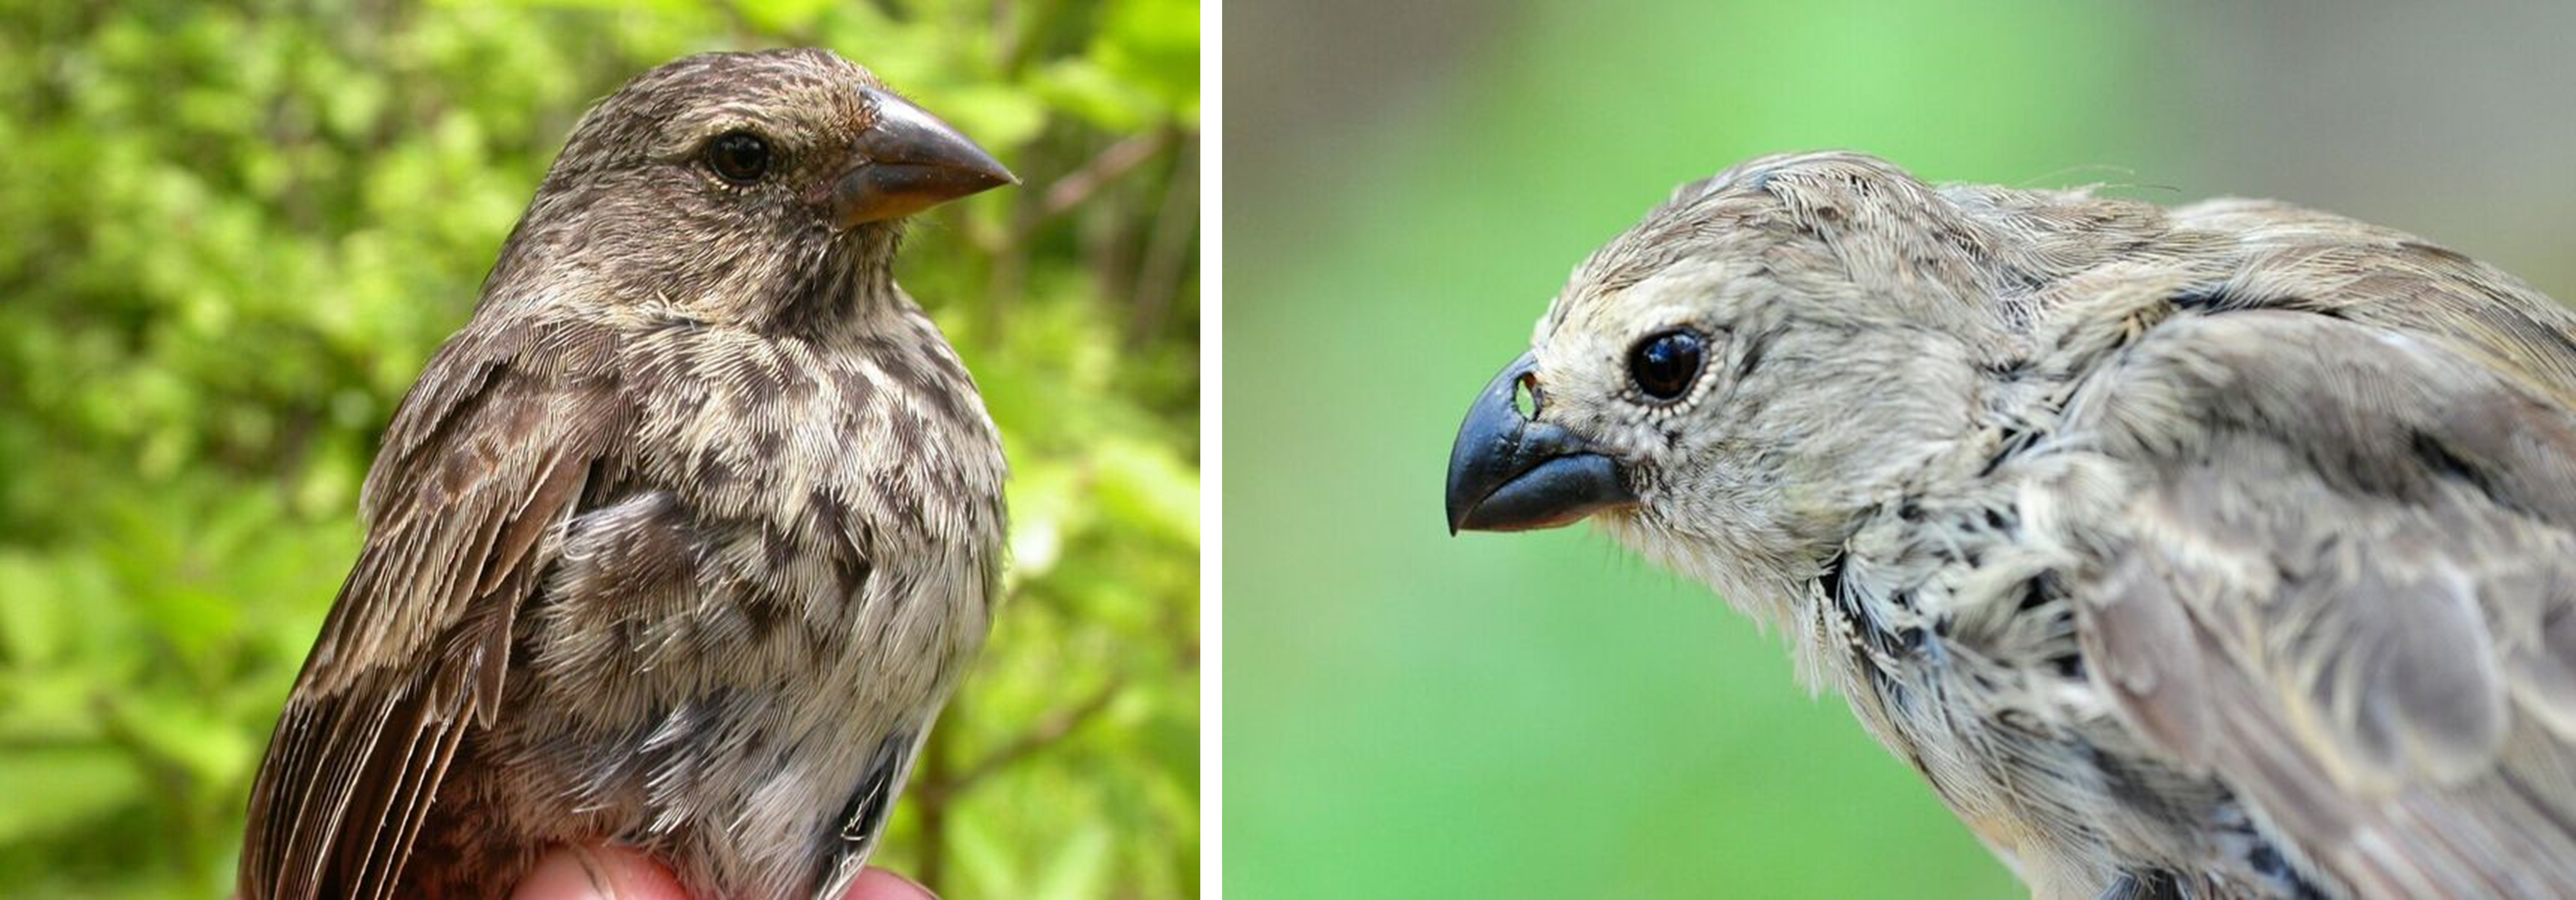 Comparative images show the beaks of a normal adult finch (right) and a survivor of P. Downsi infestation (left). Note the enlarged nostrils of the survivor. Photos by S. Kleindorfer and K.J. Peters.